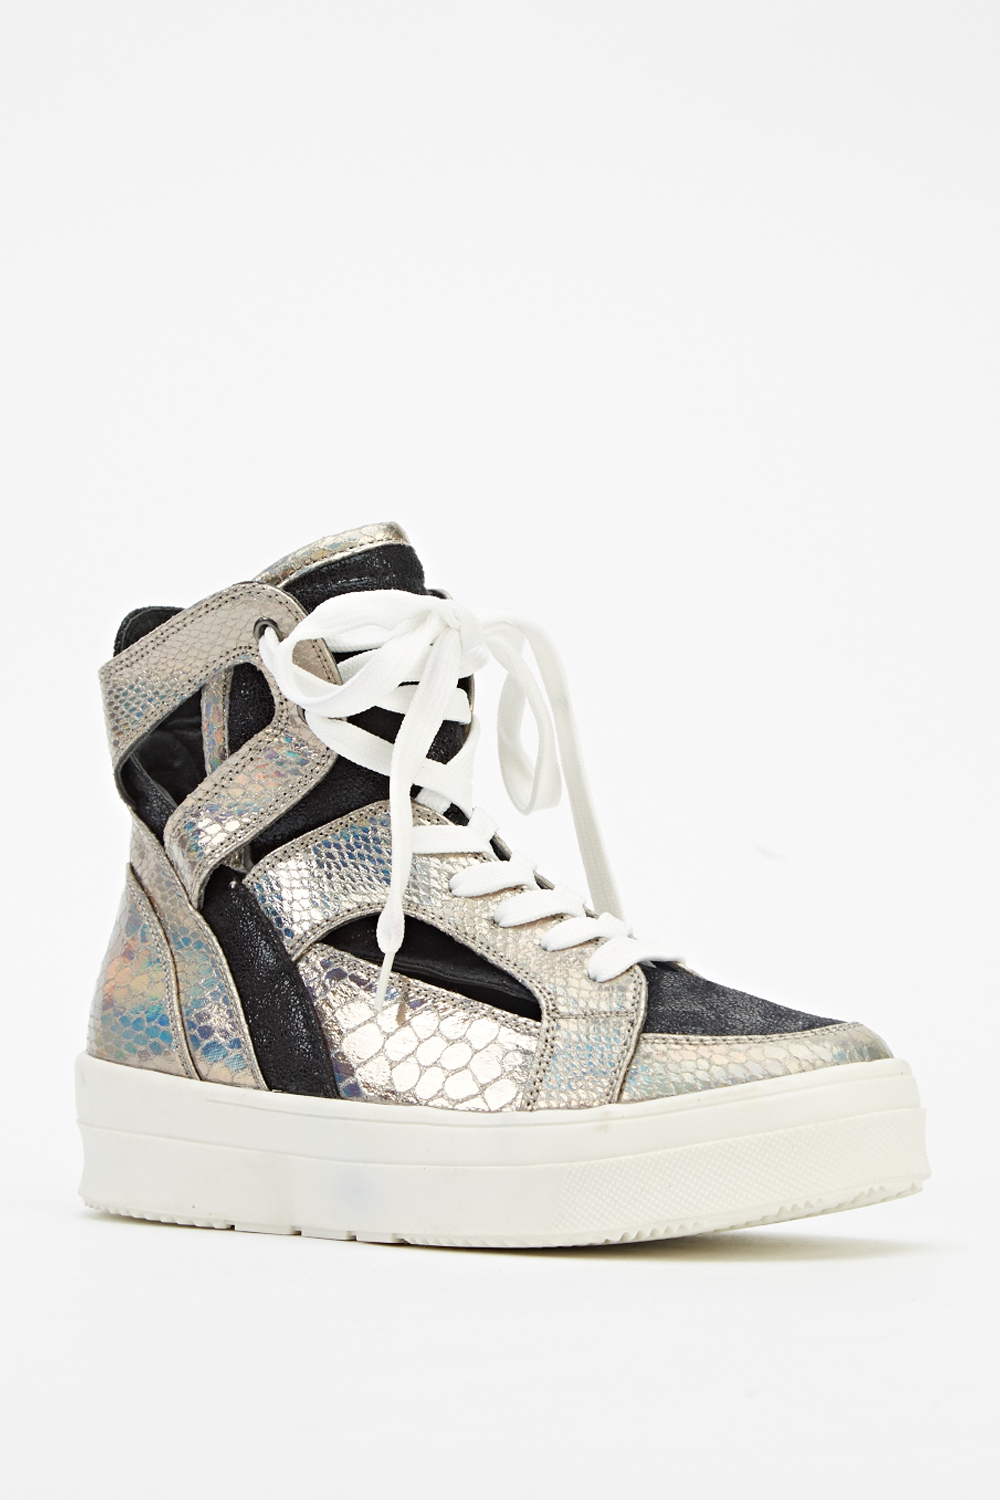 004d9c647 Mock Croc Contrast Holographic High Top Trainers - Just £5